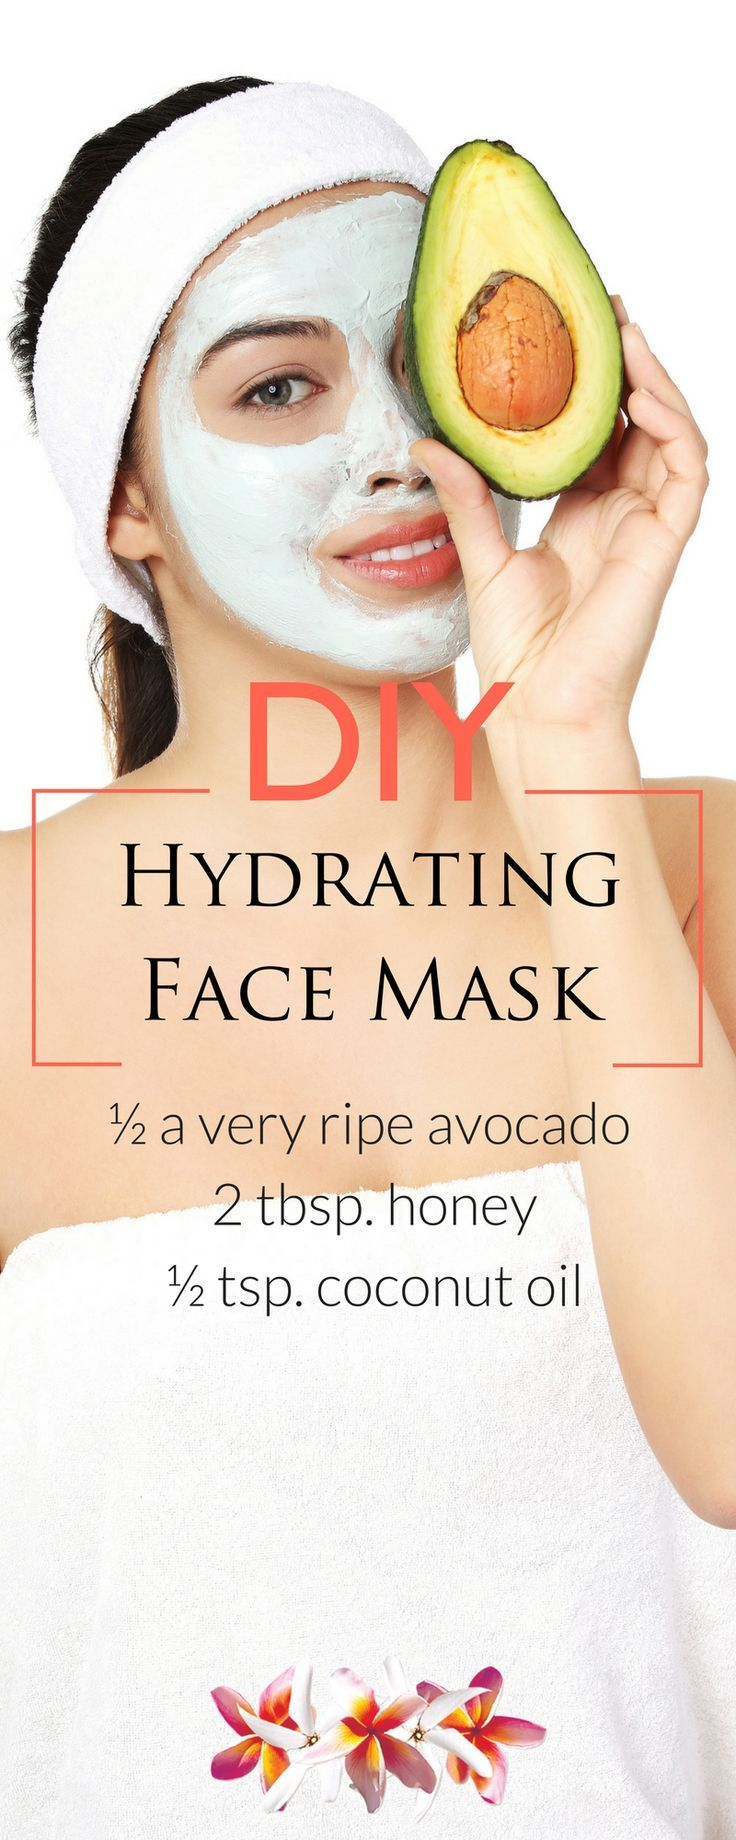 DIY Hydrating Avocado Face Mask Directions: Mash or puree the avocado until it's smooth and creamy, then blend in the rest of the ingredients. Apply to your face, avoiding your eyes, and leave on for 10-15 mins. Wipe your face clean with a damp cloth and rinse your face with warm water. Learn more natural skin care tips at http://www.purefiji.com/blog/diy-home-spa/